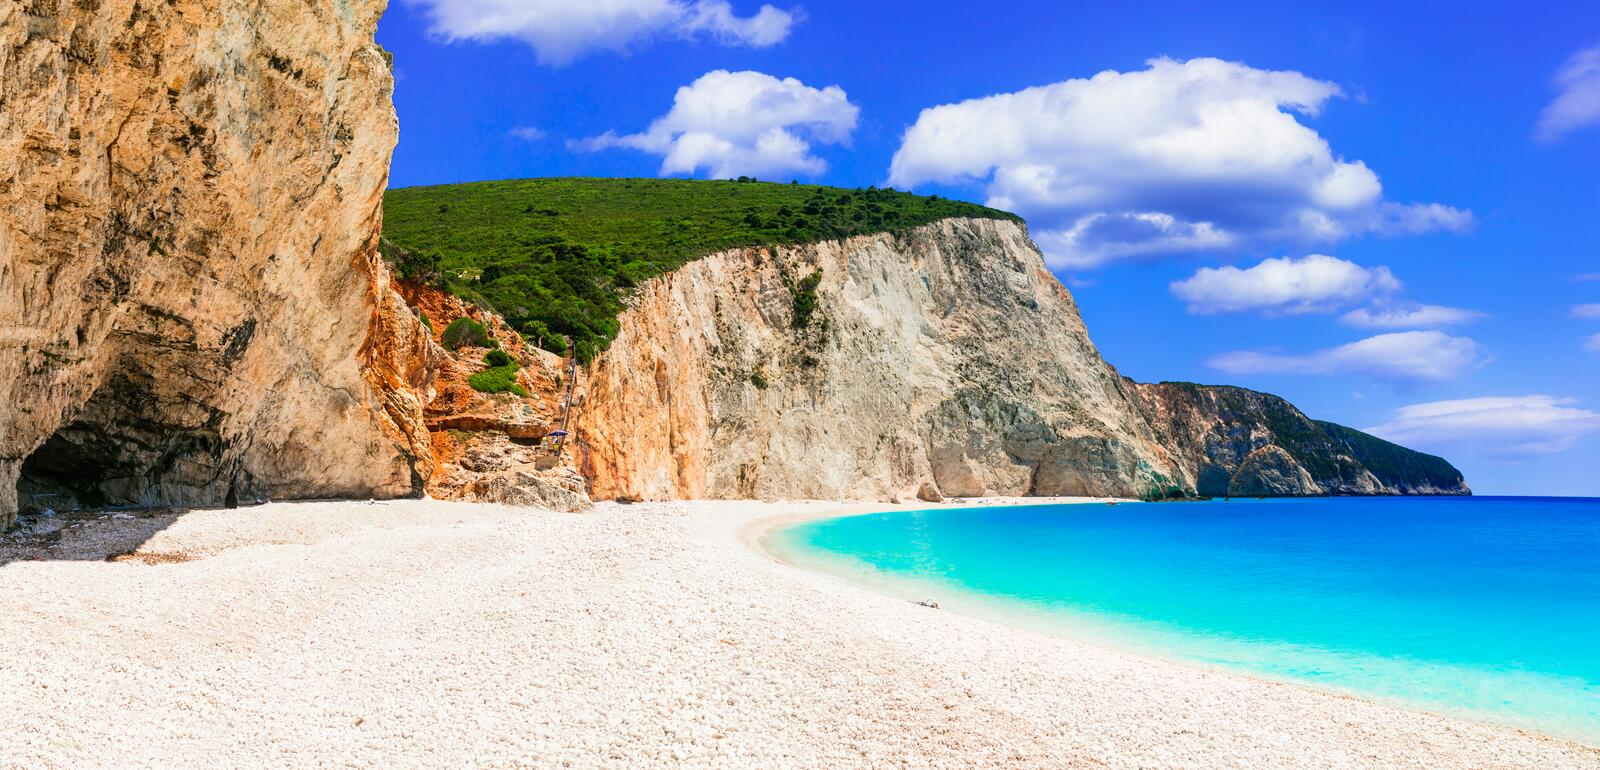 Greece. Most beautiful beaches. Porto Katsiki in Lefkada island. Beautiful Porto Katsiki beach,Lefkada island,Greece stock image